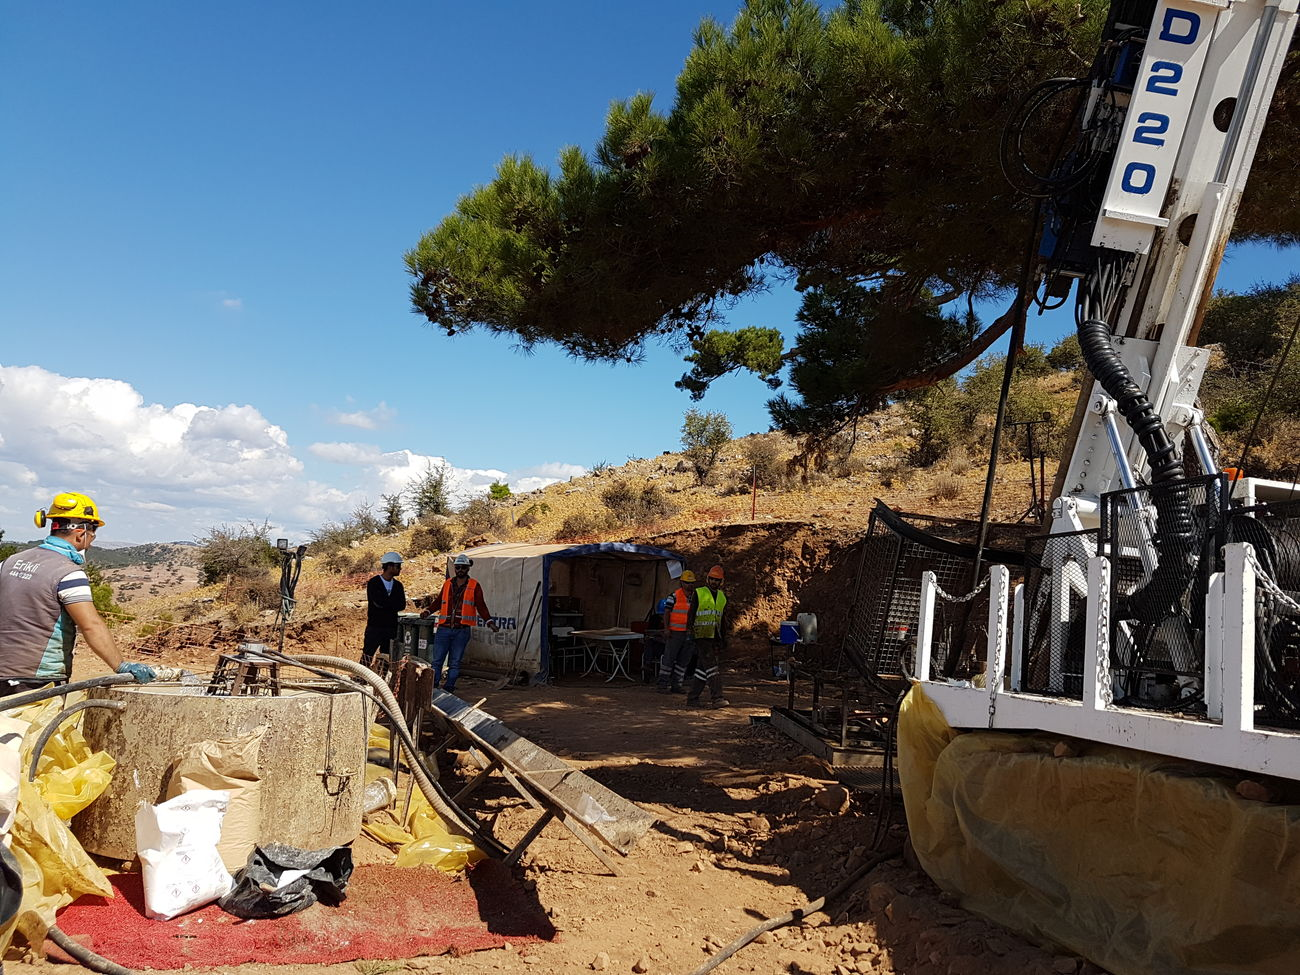 Drillteam Turkey Mining For Gold Building Exterior Mining Industry Best Drill Company Spektra Jeotek Best Company Nature Photography Mining Exploration Working People People Day Bestshot Tree Sunlight Blue Sky Sunny Day Outdoors Summer Cloud - Sky Town